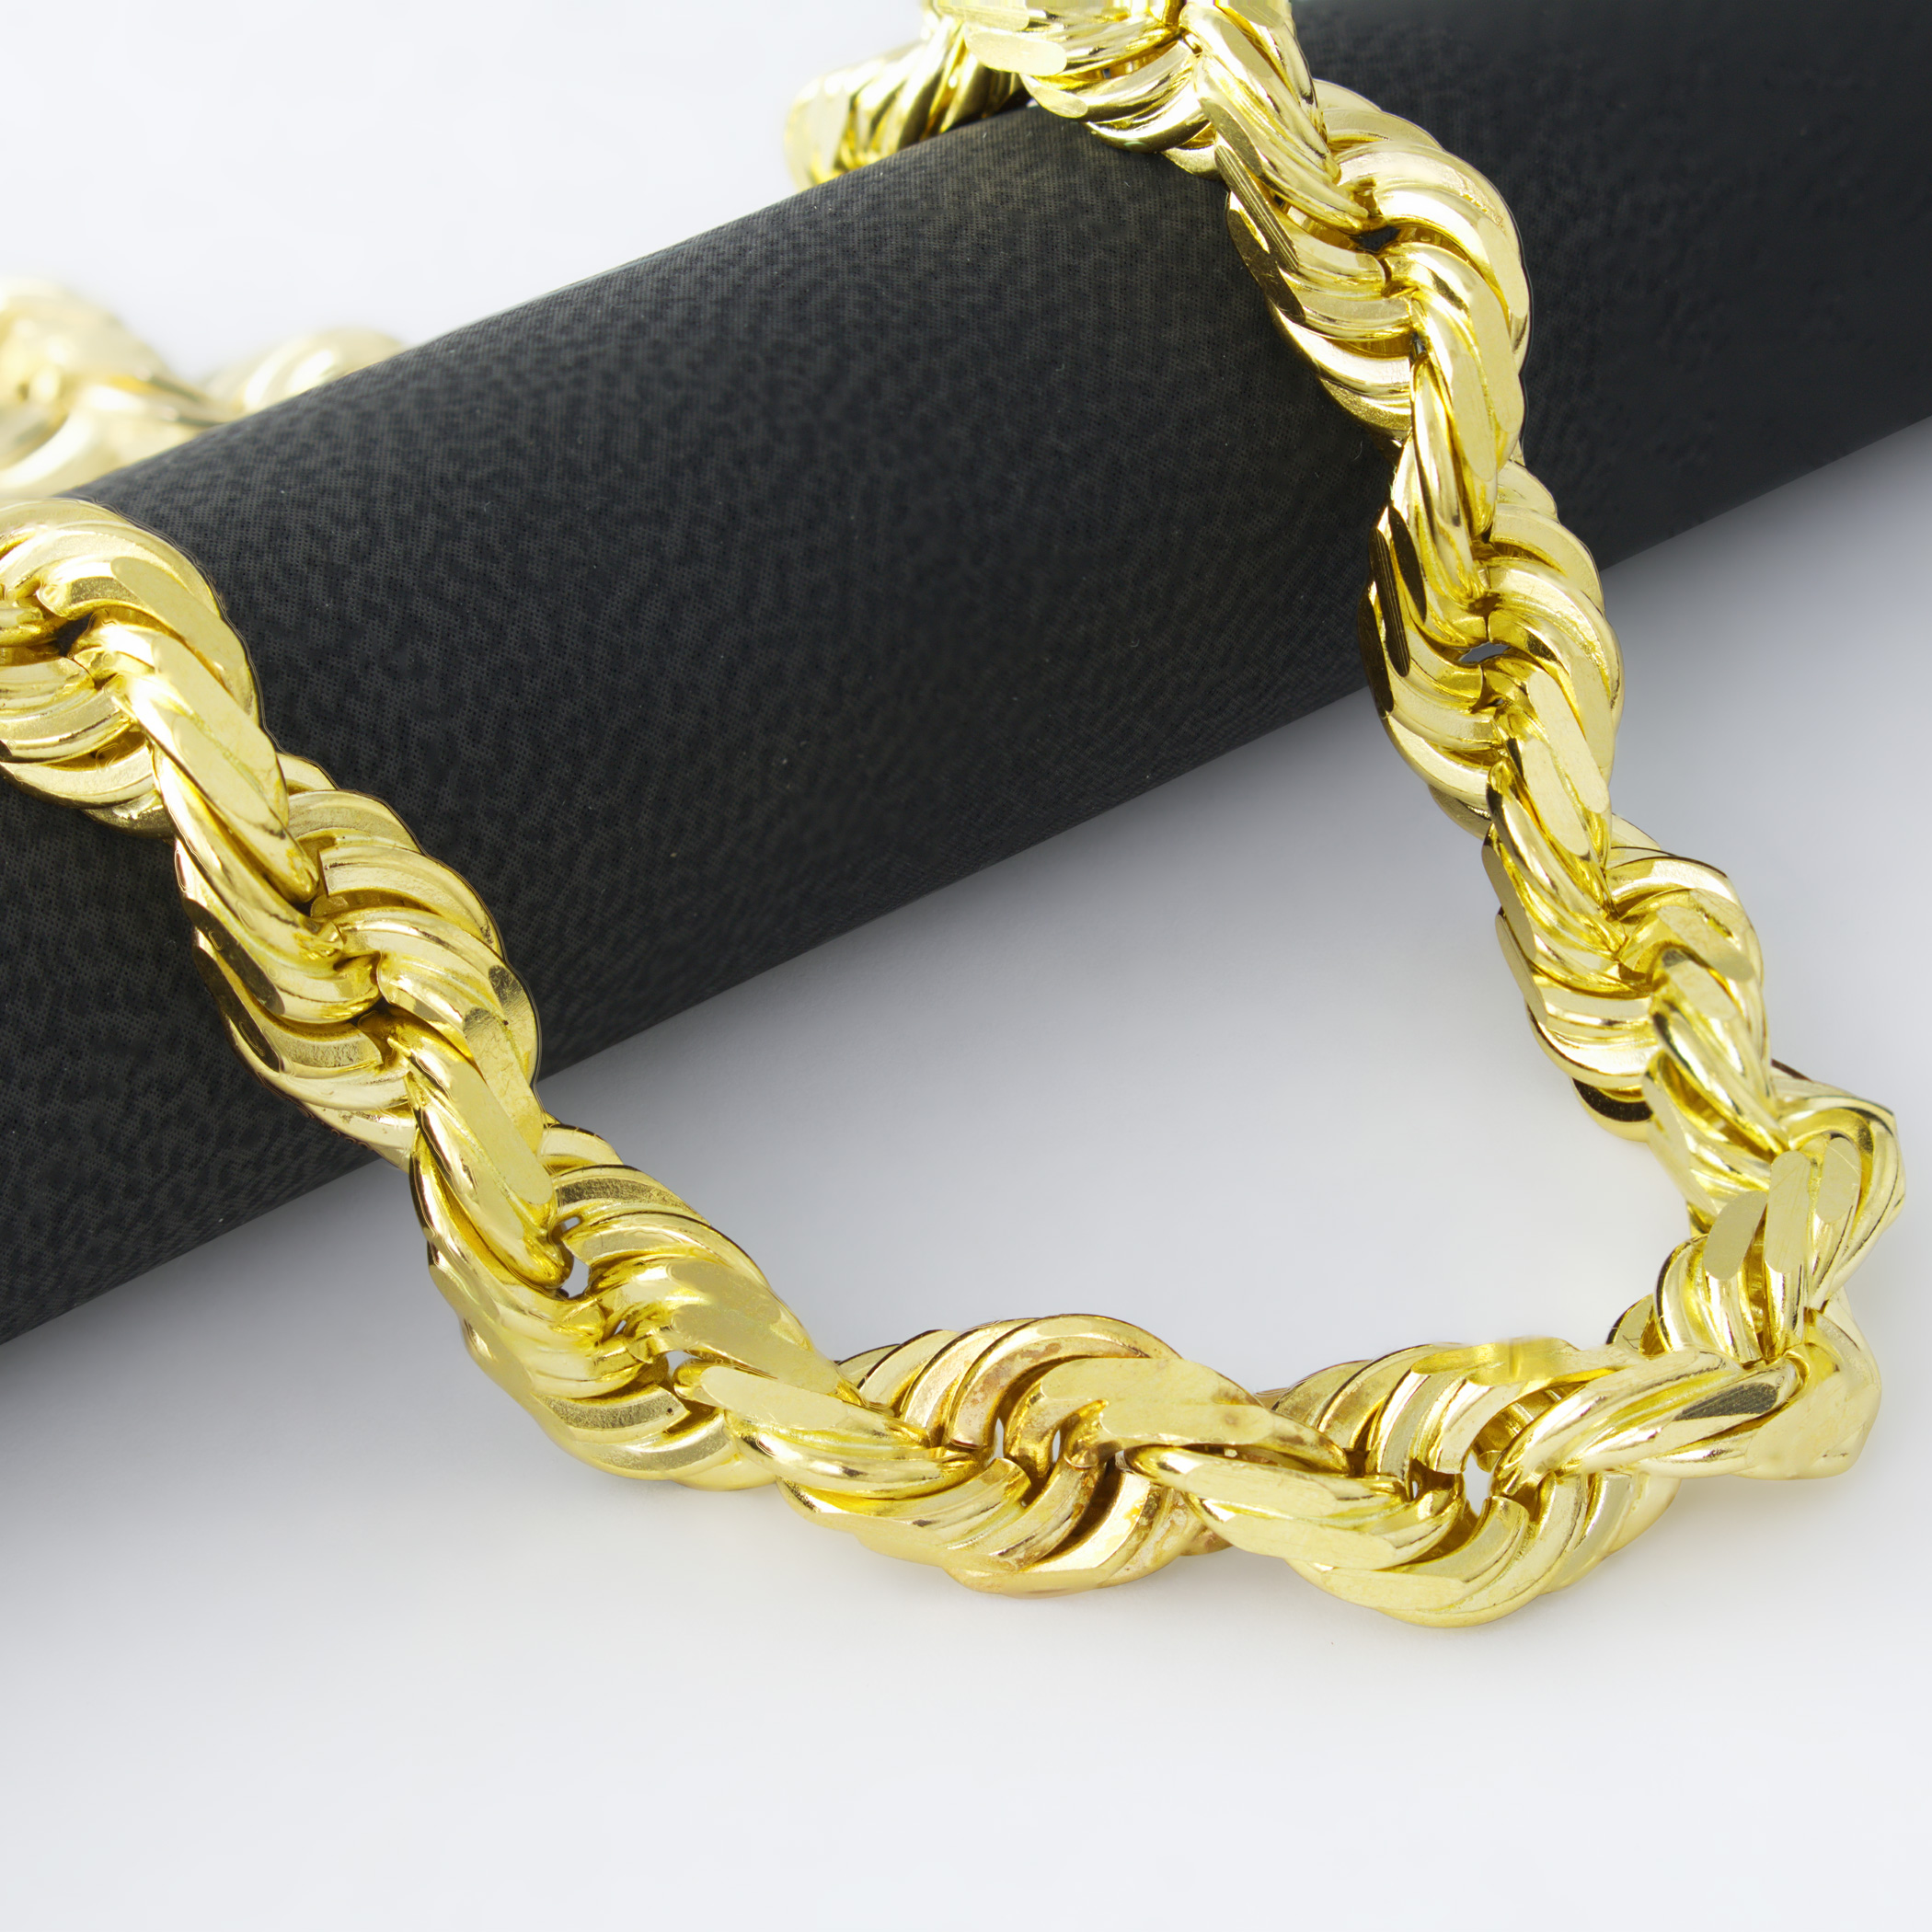 lowres gods necklace jewelry in diamond tennis chains the mens new crop gold bracelets mnml chain collections